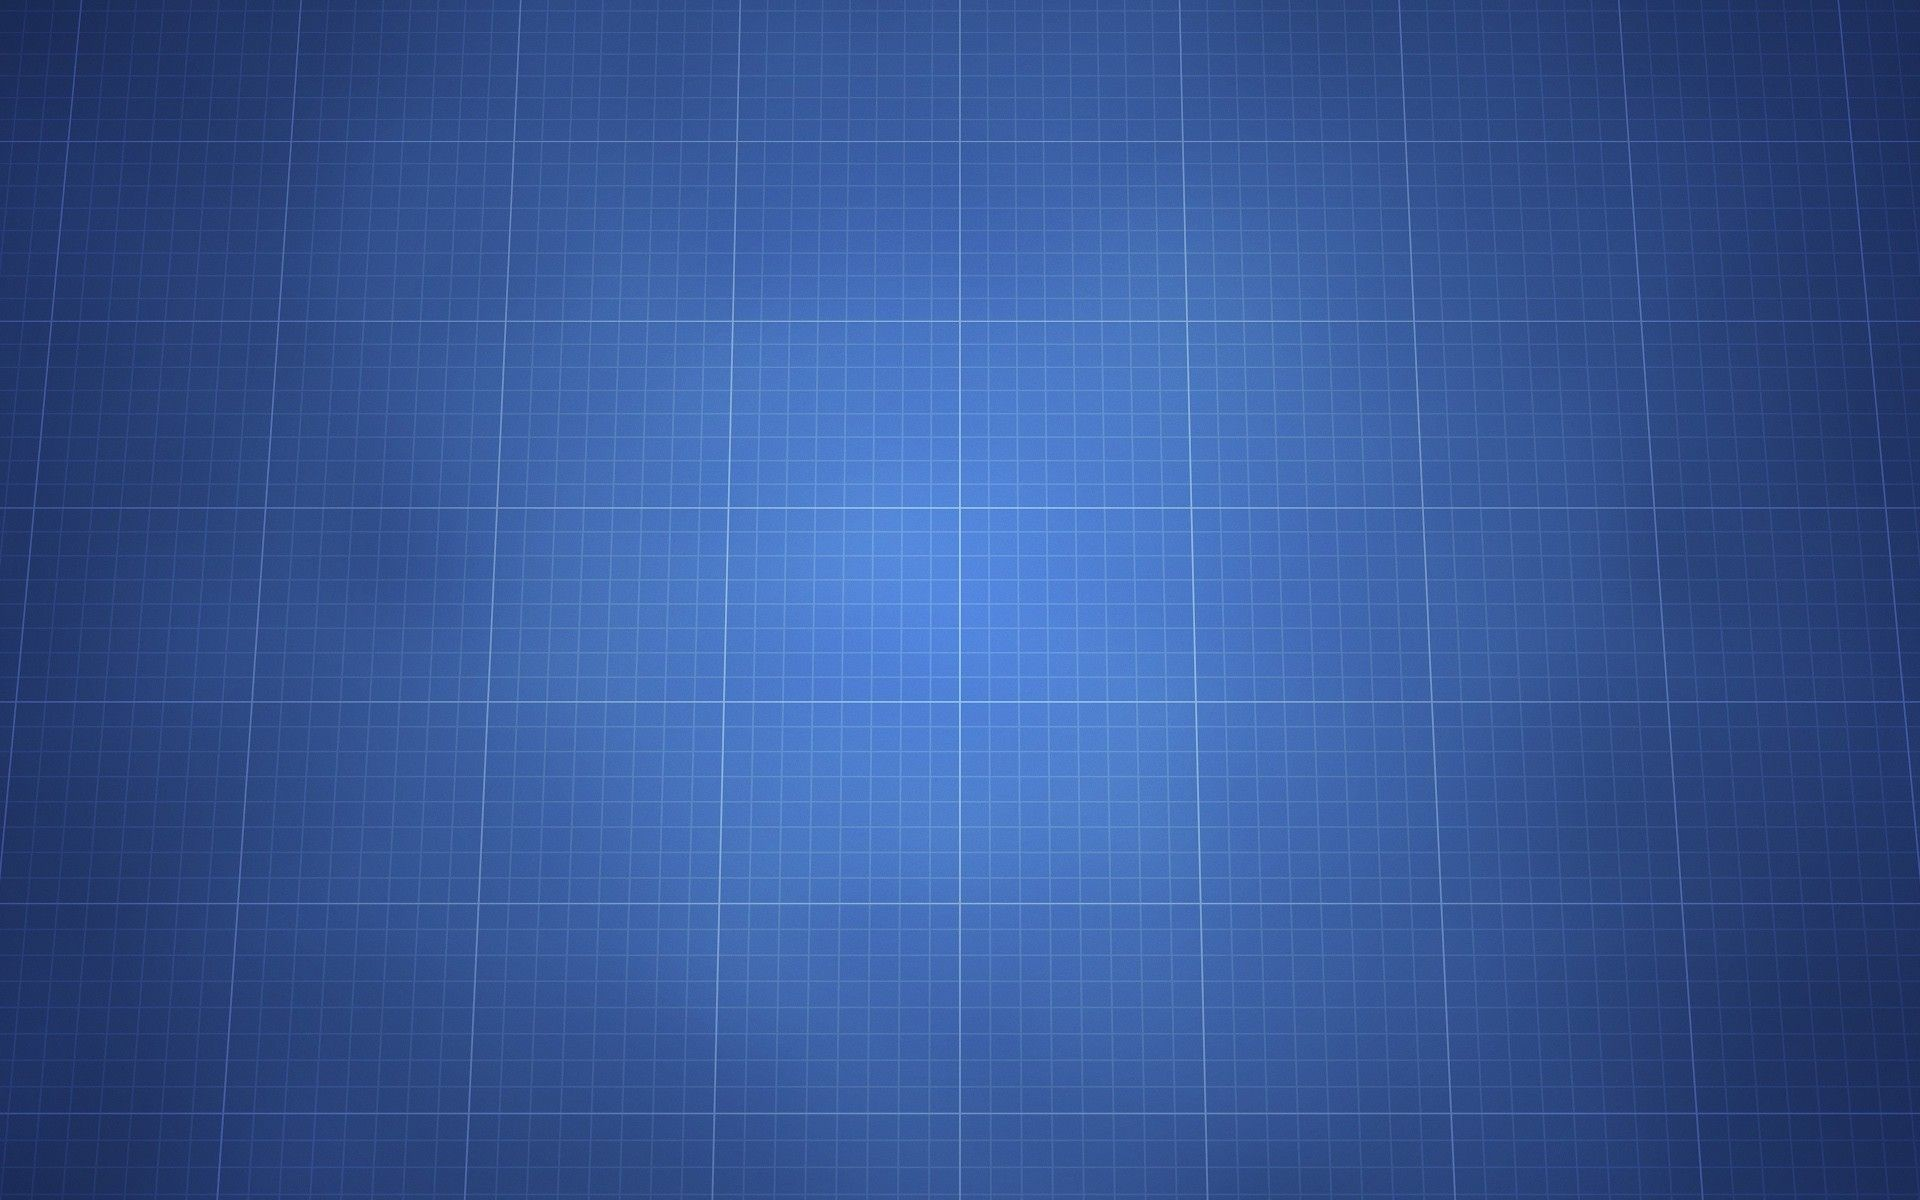 Grid wallpaper download free cool hd wallpapers for desktop and mobile devices in any - Wallpaper 600x600 ...